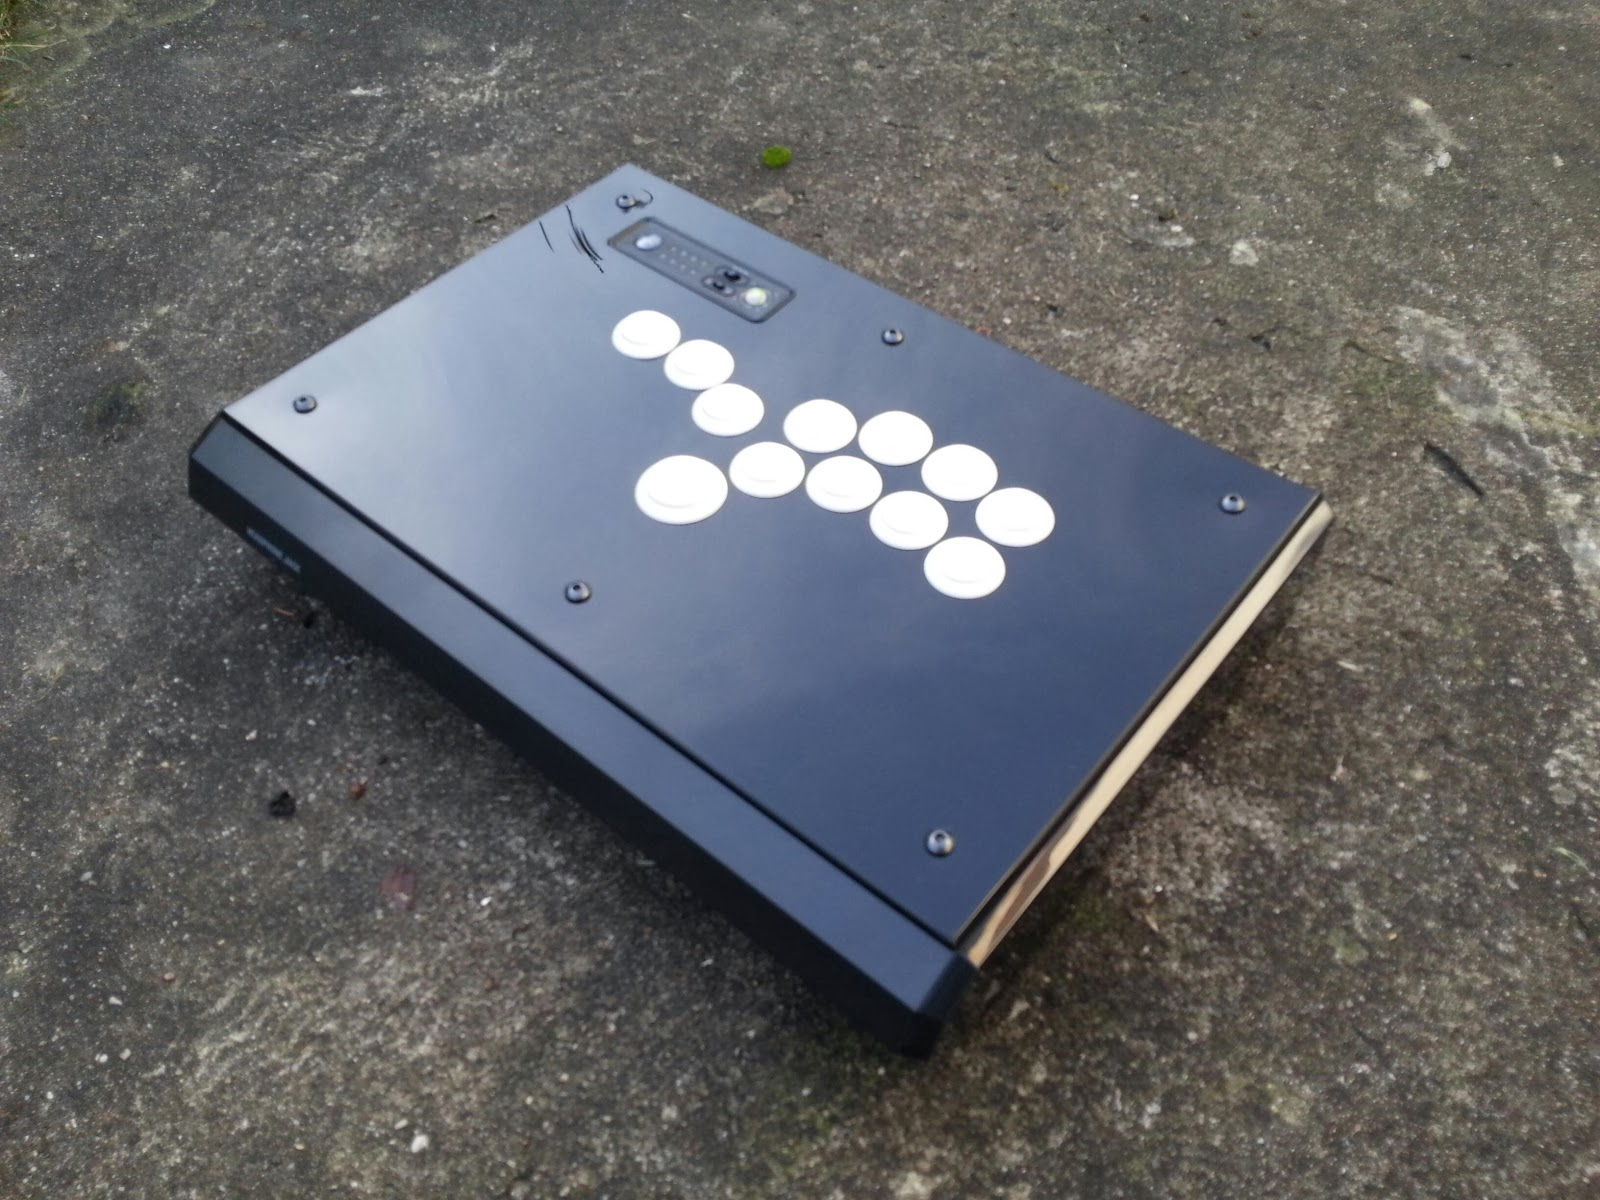 Arcade and Video Game Modding: Yet another hitbox